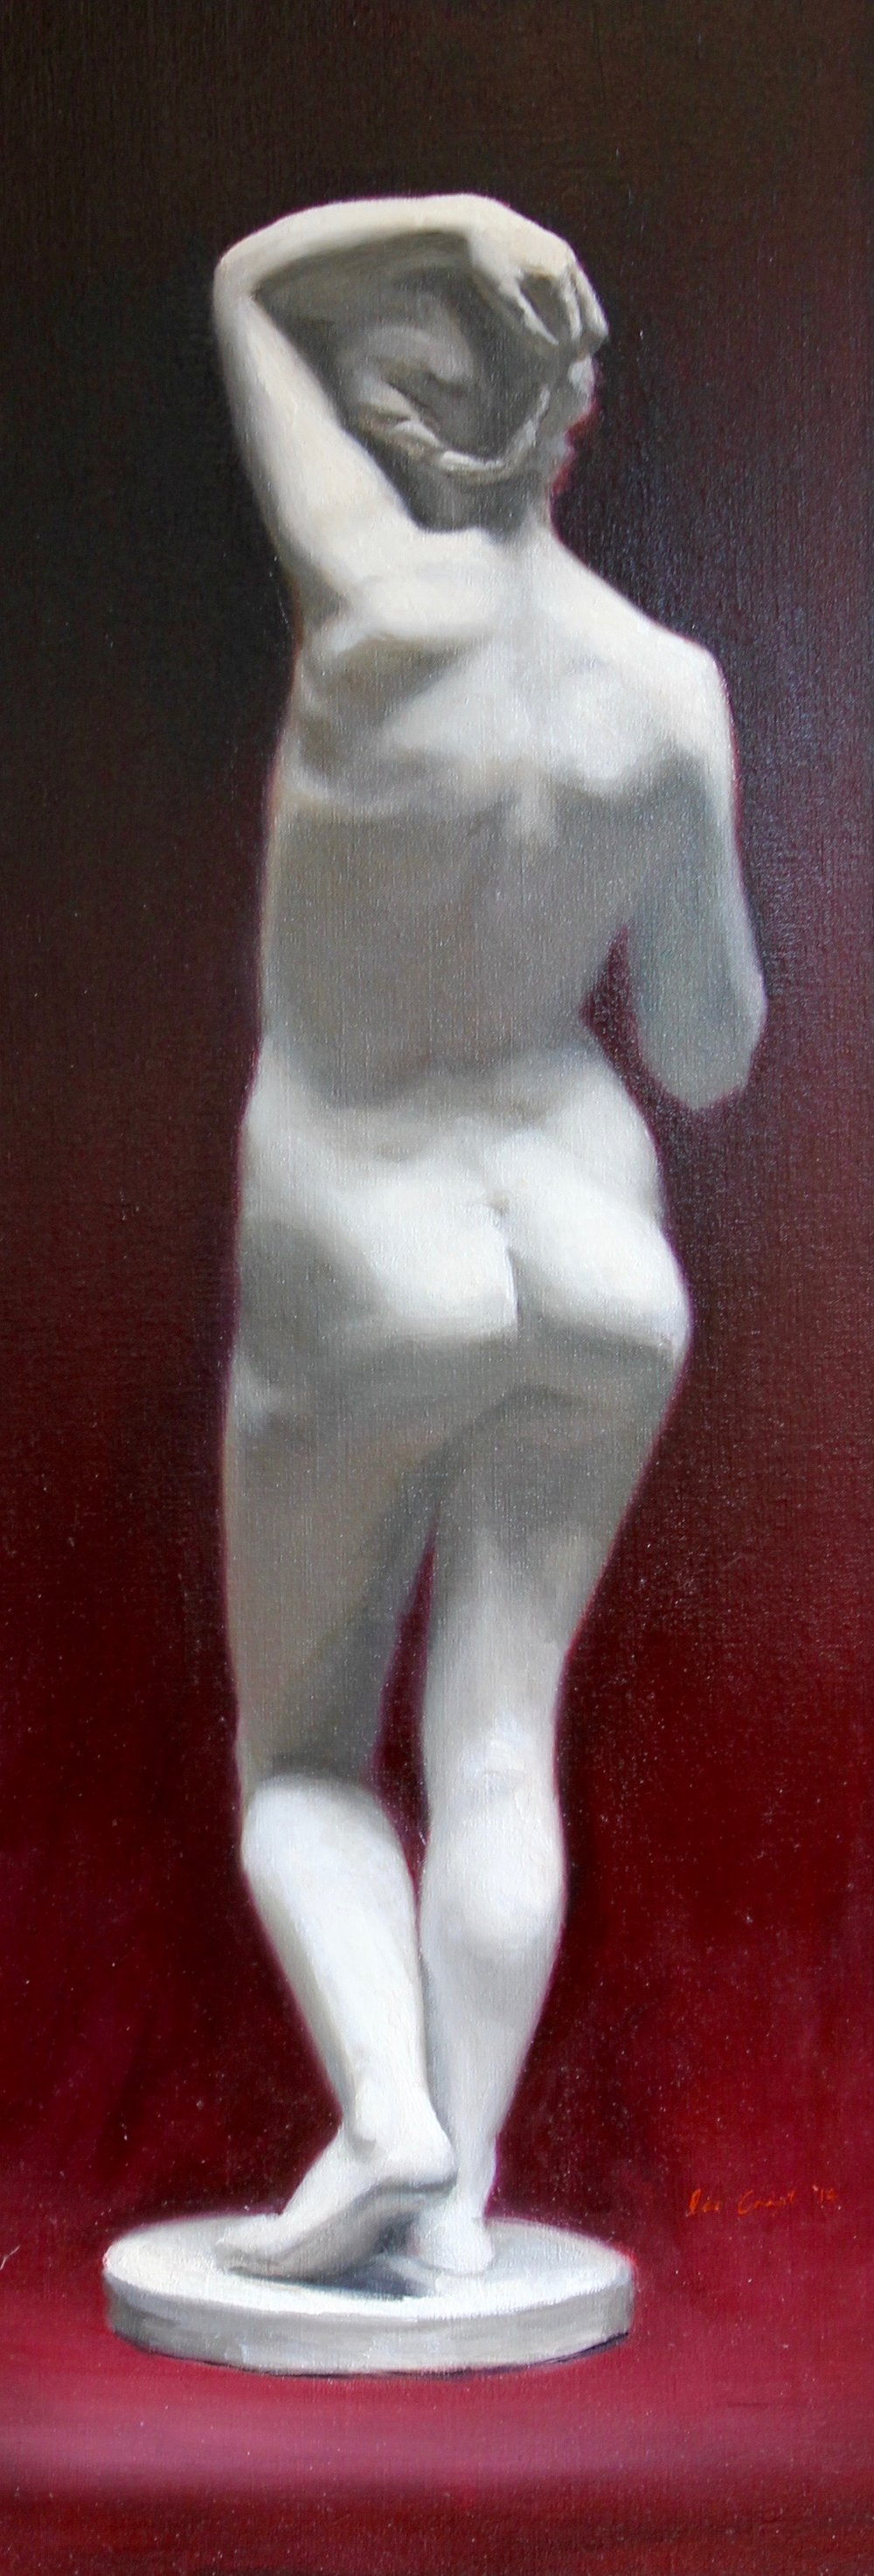 """Nude"", Oil on linen, 39x14 in."